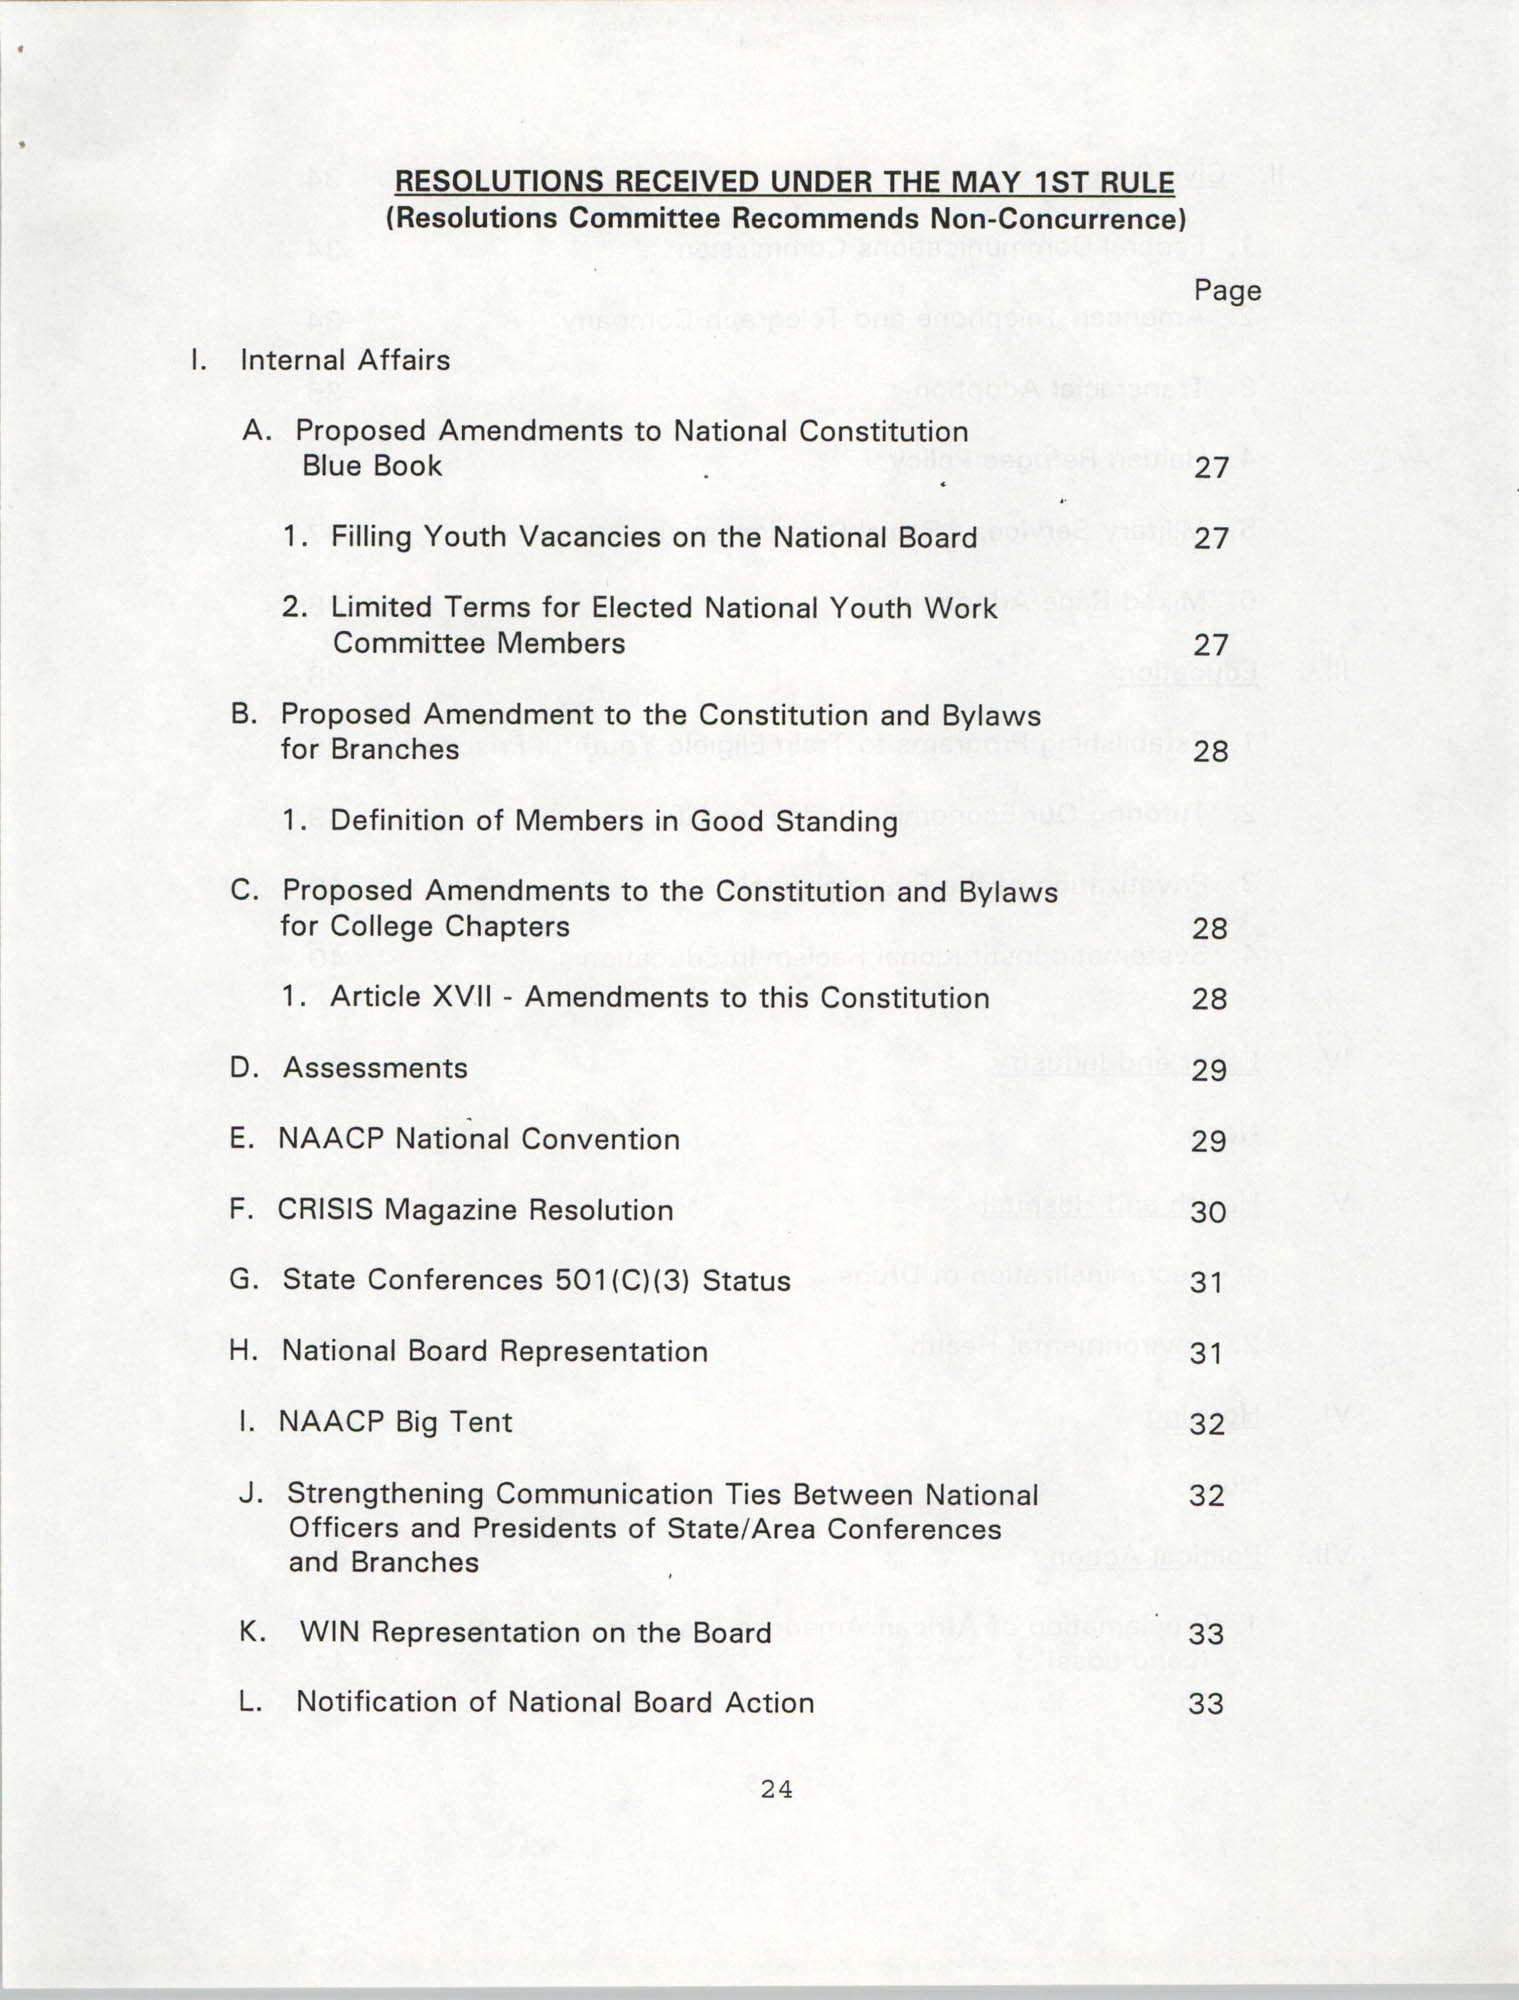 Resolutions Submitted Under Article X, Section 2 of the Constitution of the NAACP, 1994, Page 24